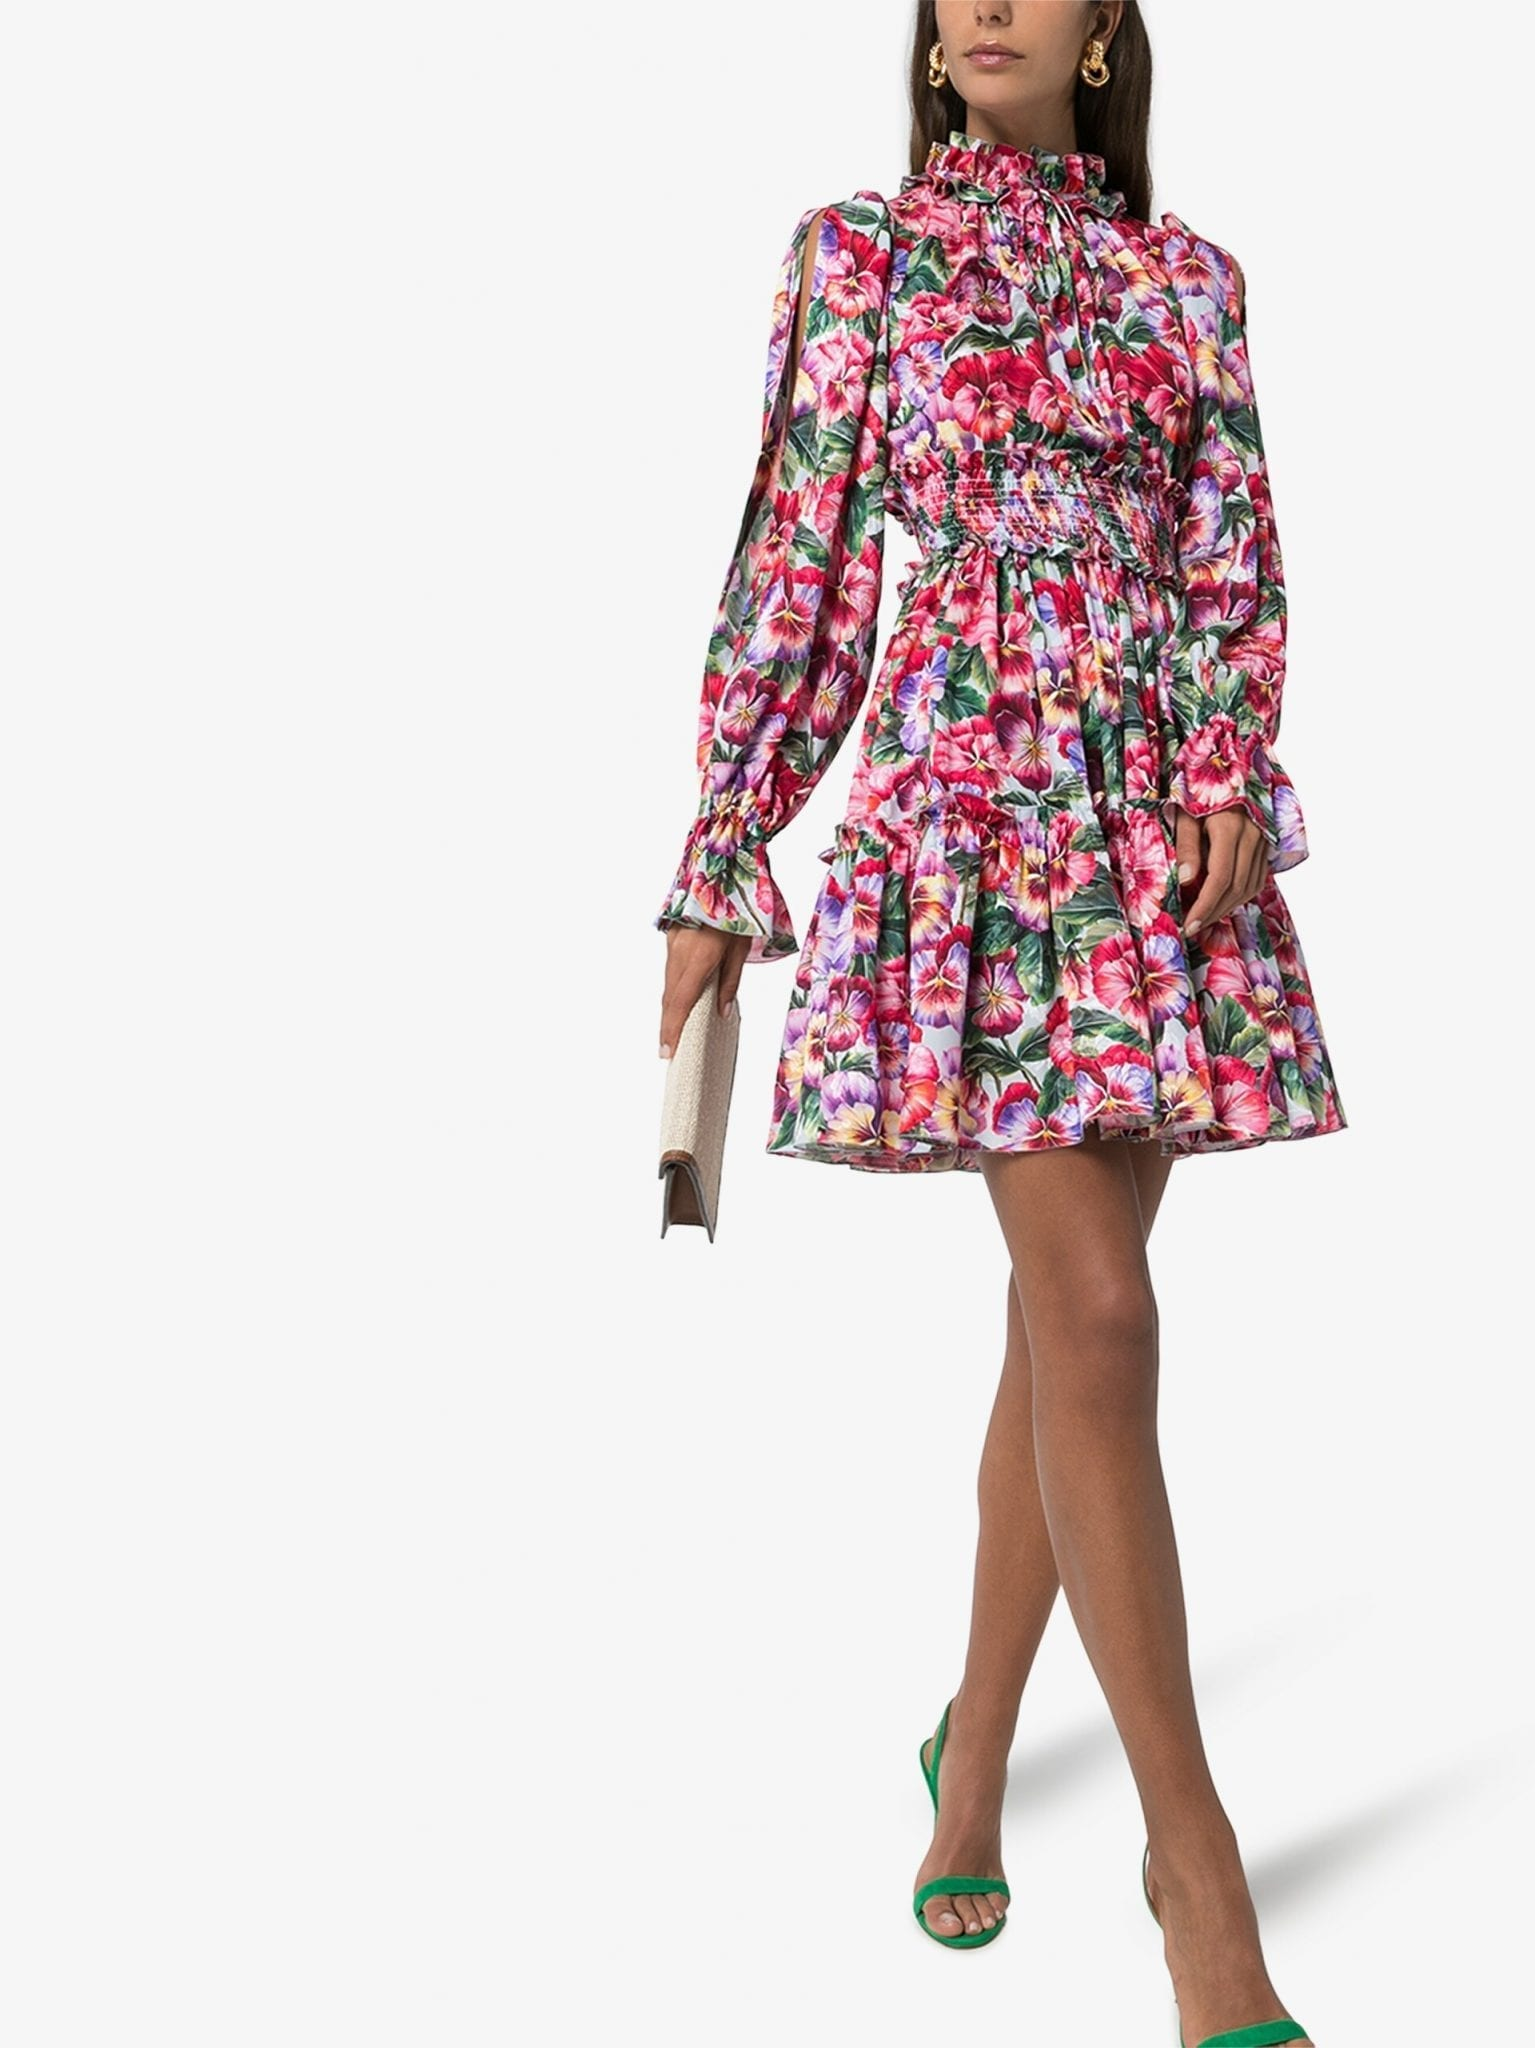 DOLCE & GABBANA Floral Print Silk Mini Dress